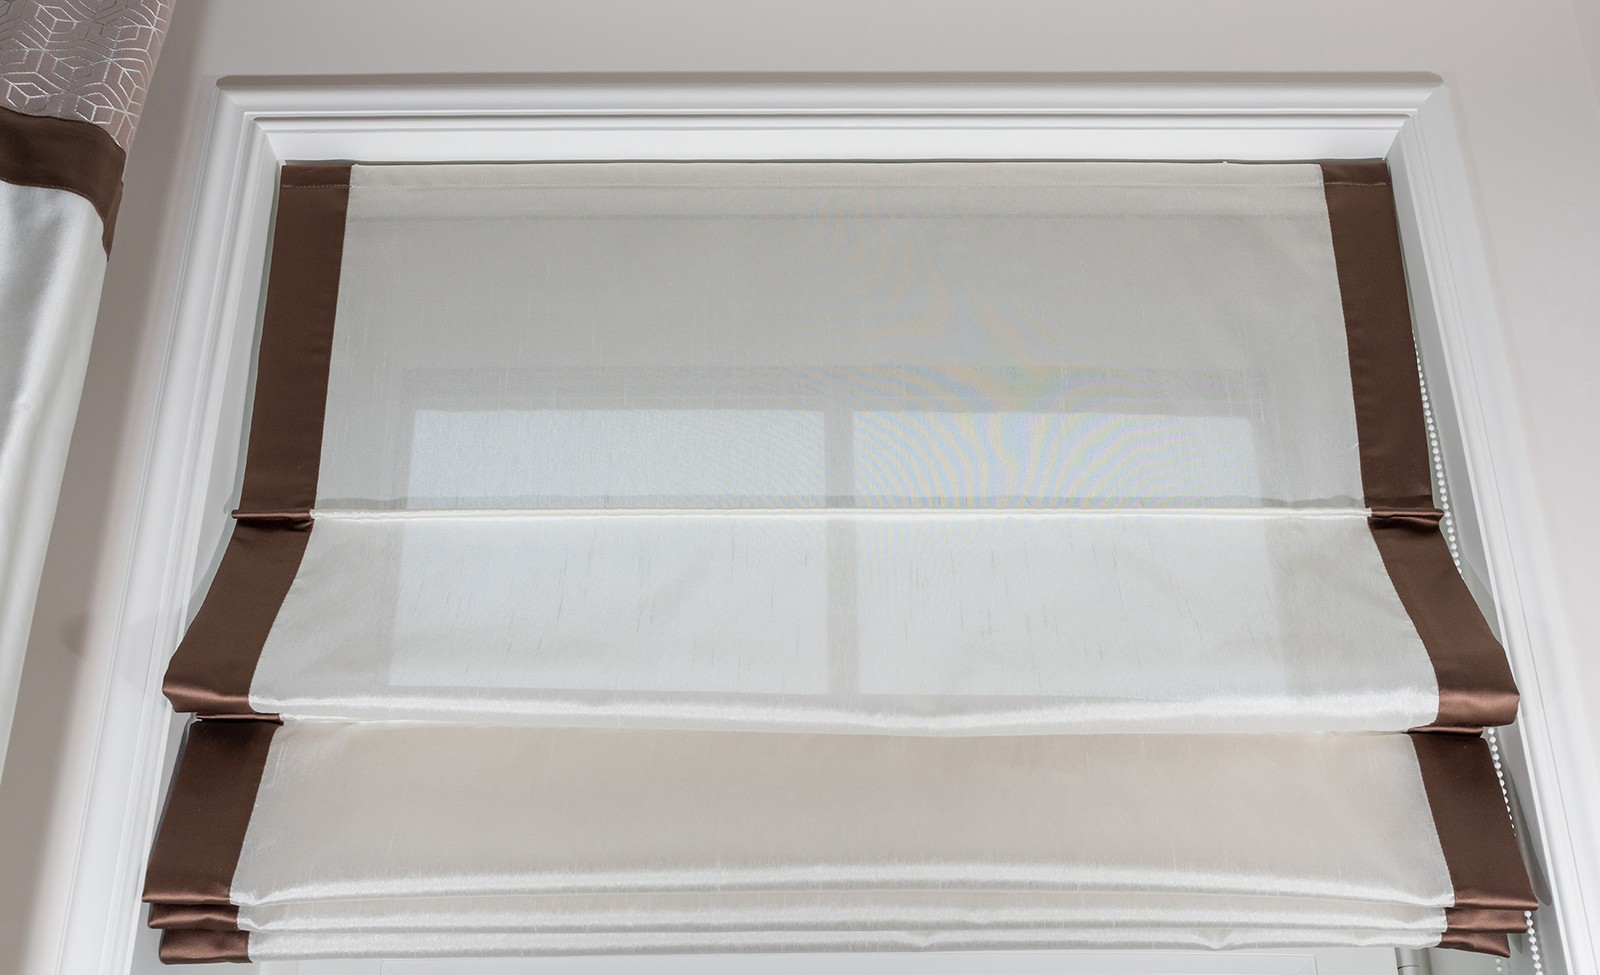 Solarglide SG Roman Blinds dimout material